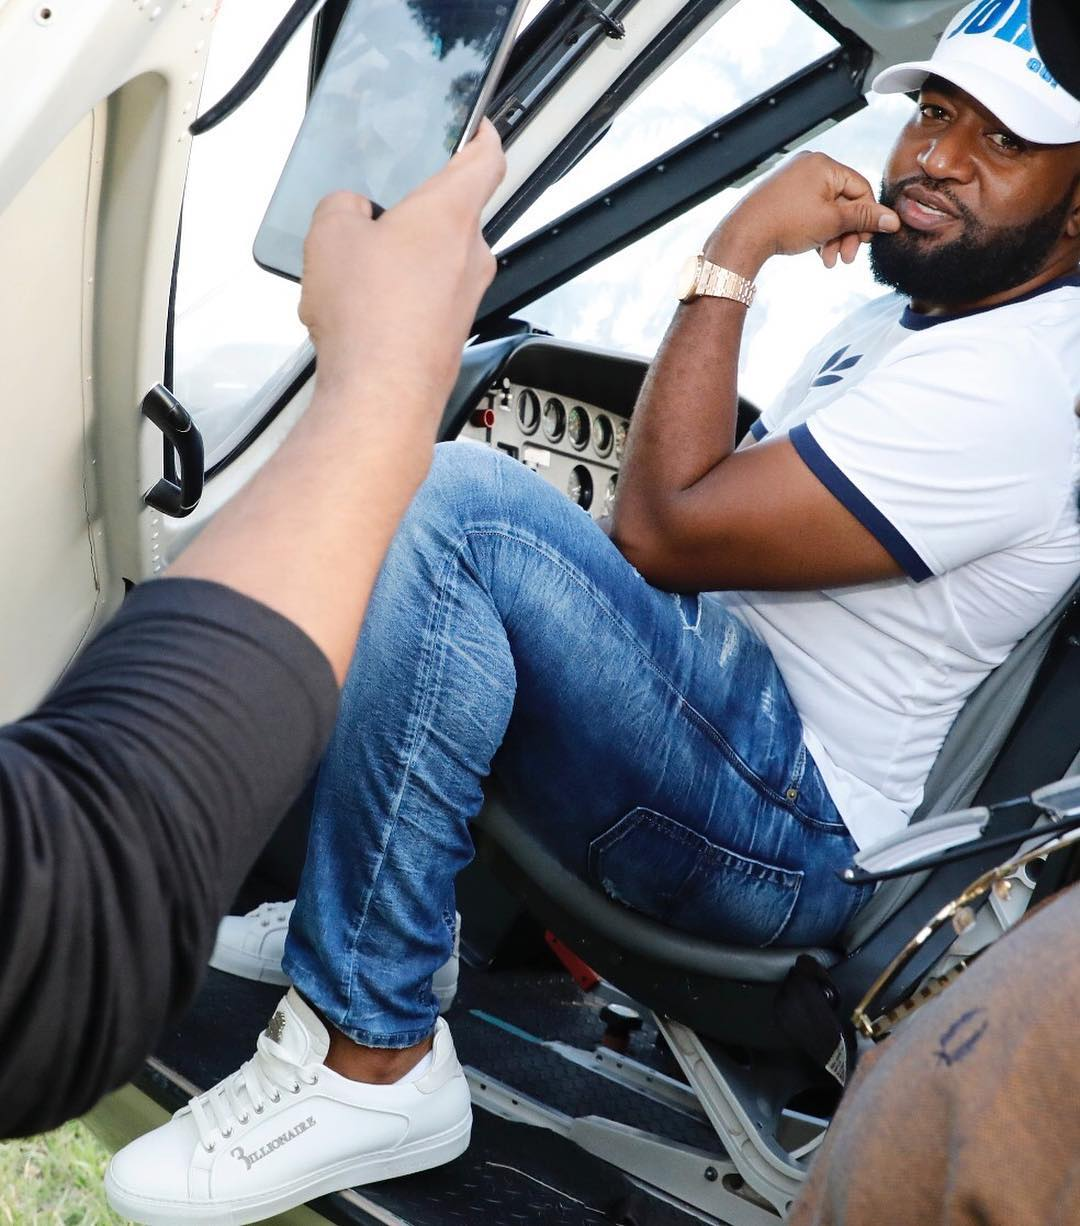 Joho ali - Mr steal your girl! Tantalizing photos of Governor Joho